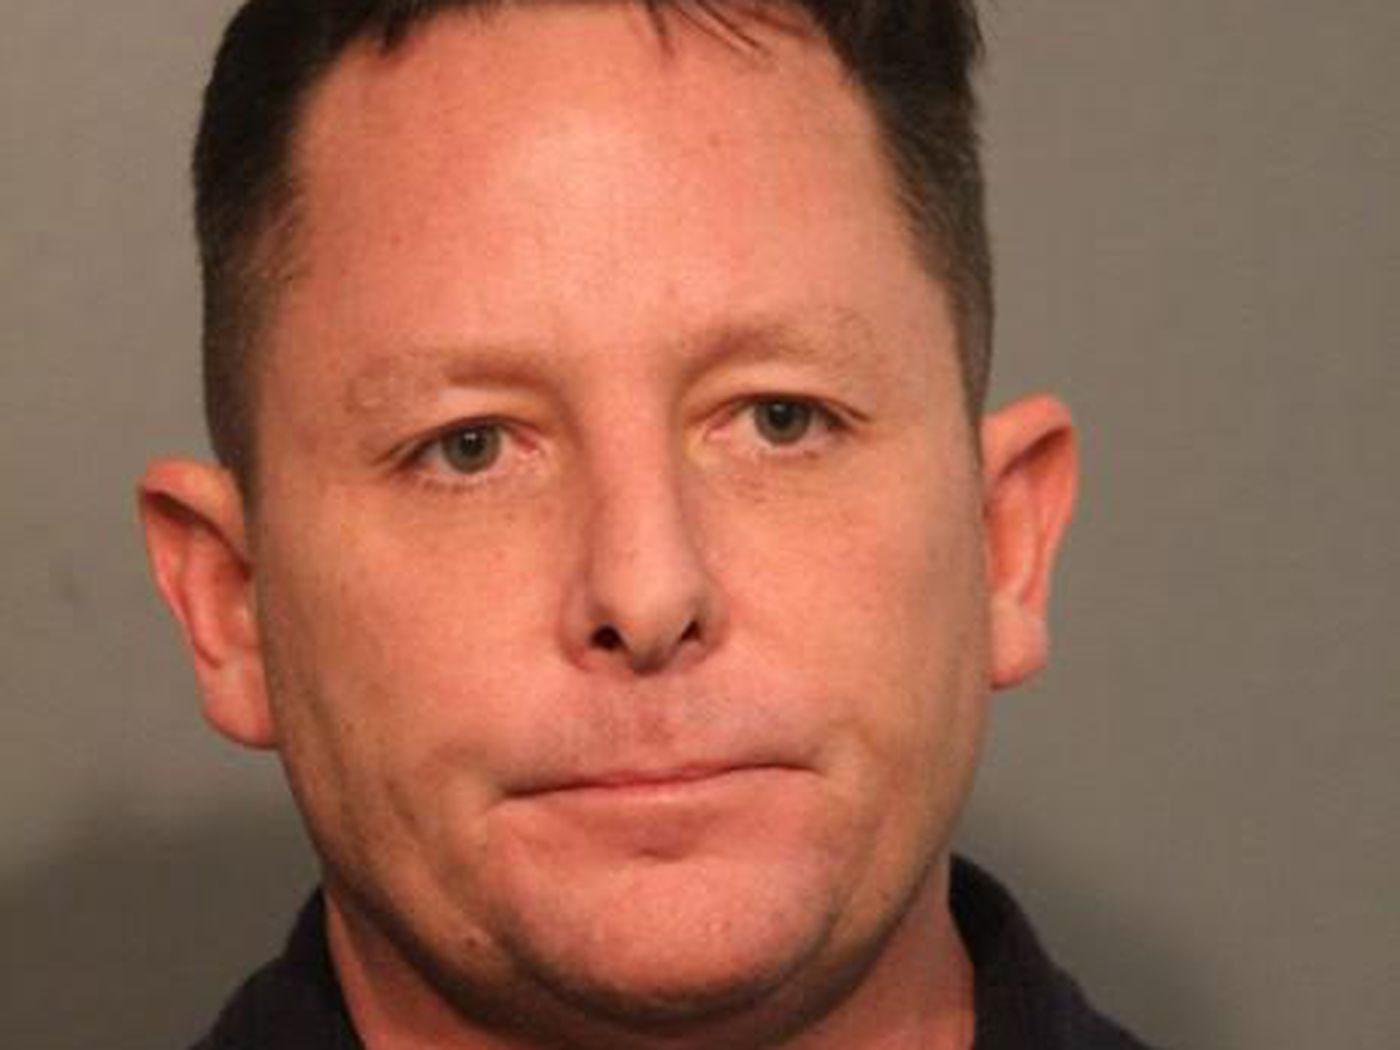 Texts Reveal Brian Travis Cps Instructor Asked Student To Have